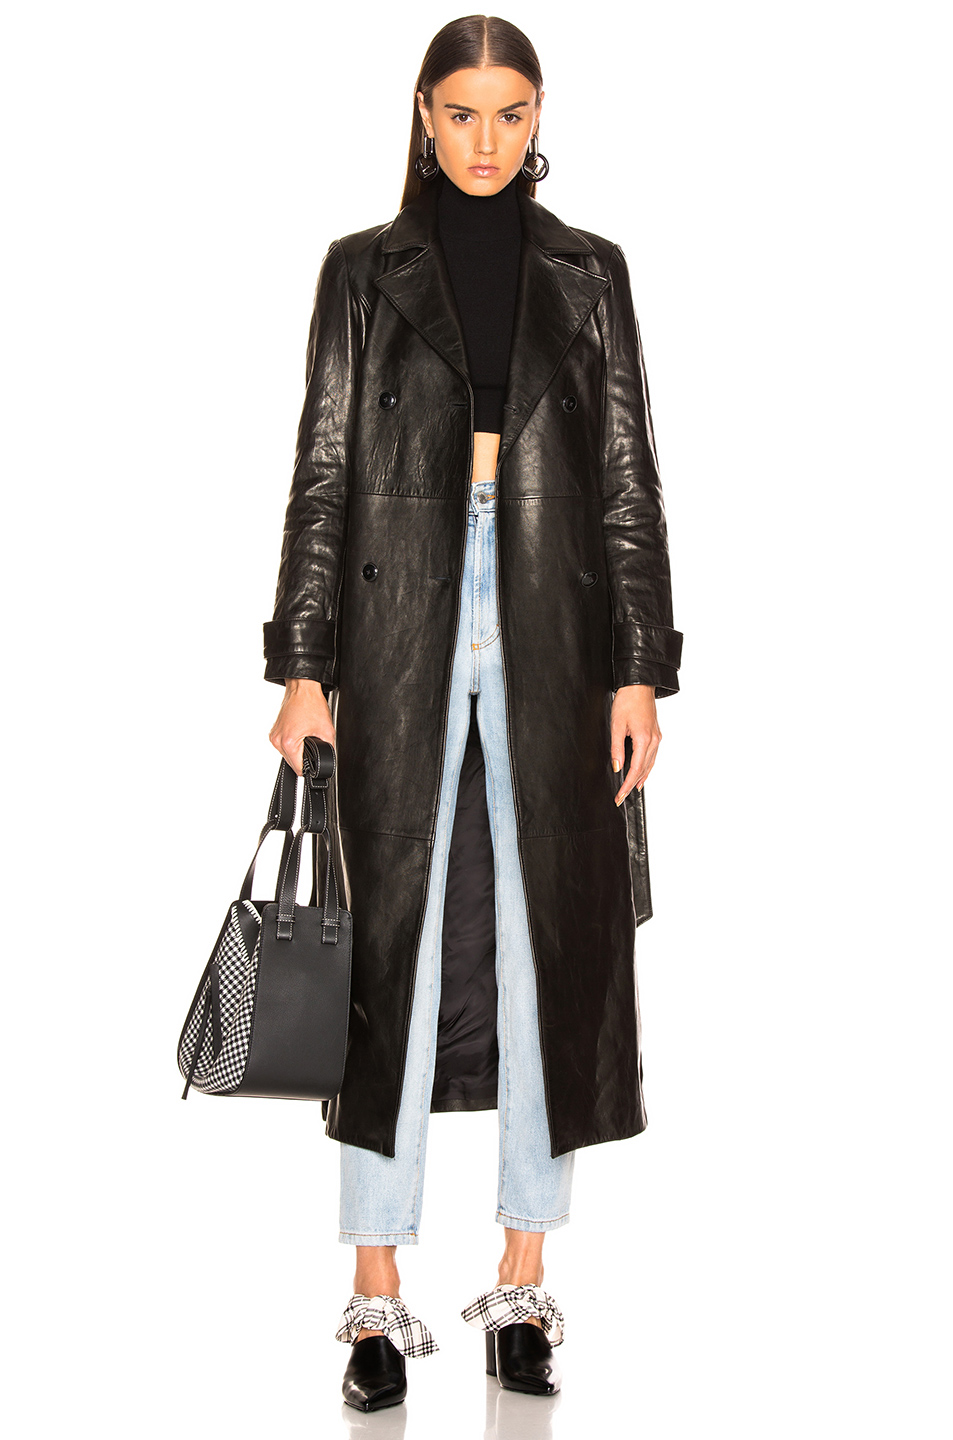 trench coat by Frame, available on fwrd.com for $2495 Kendall Jenner Outerwear Exact Product